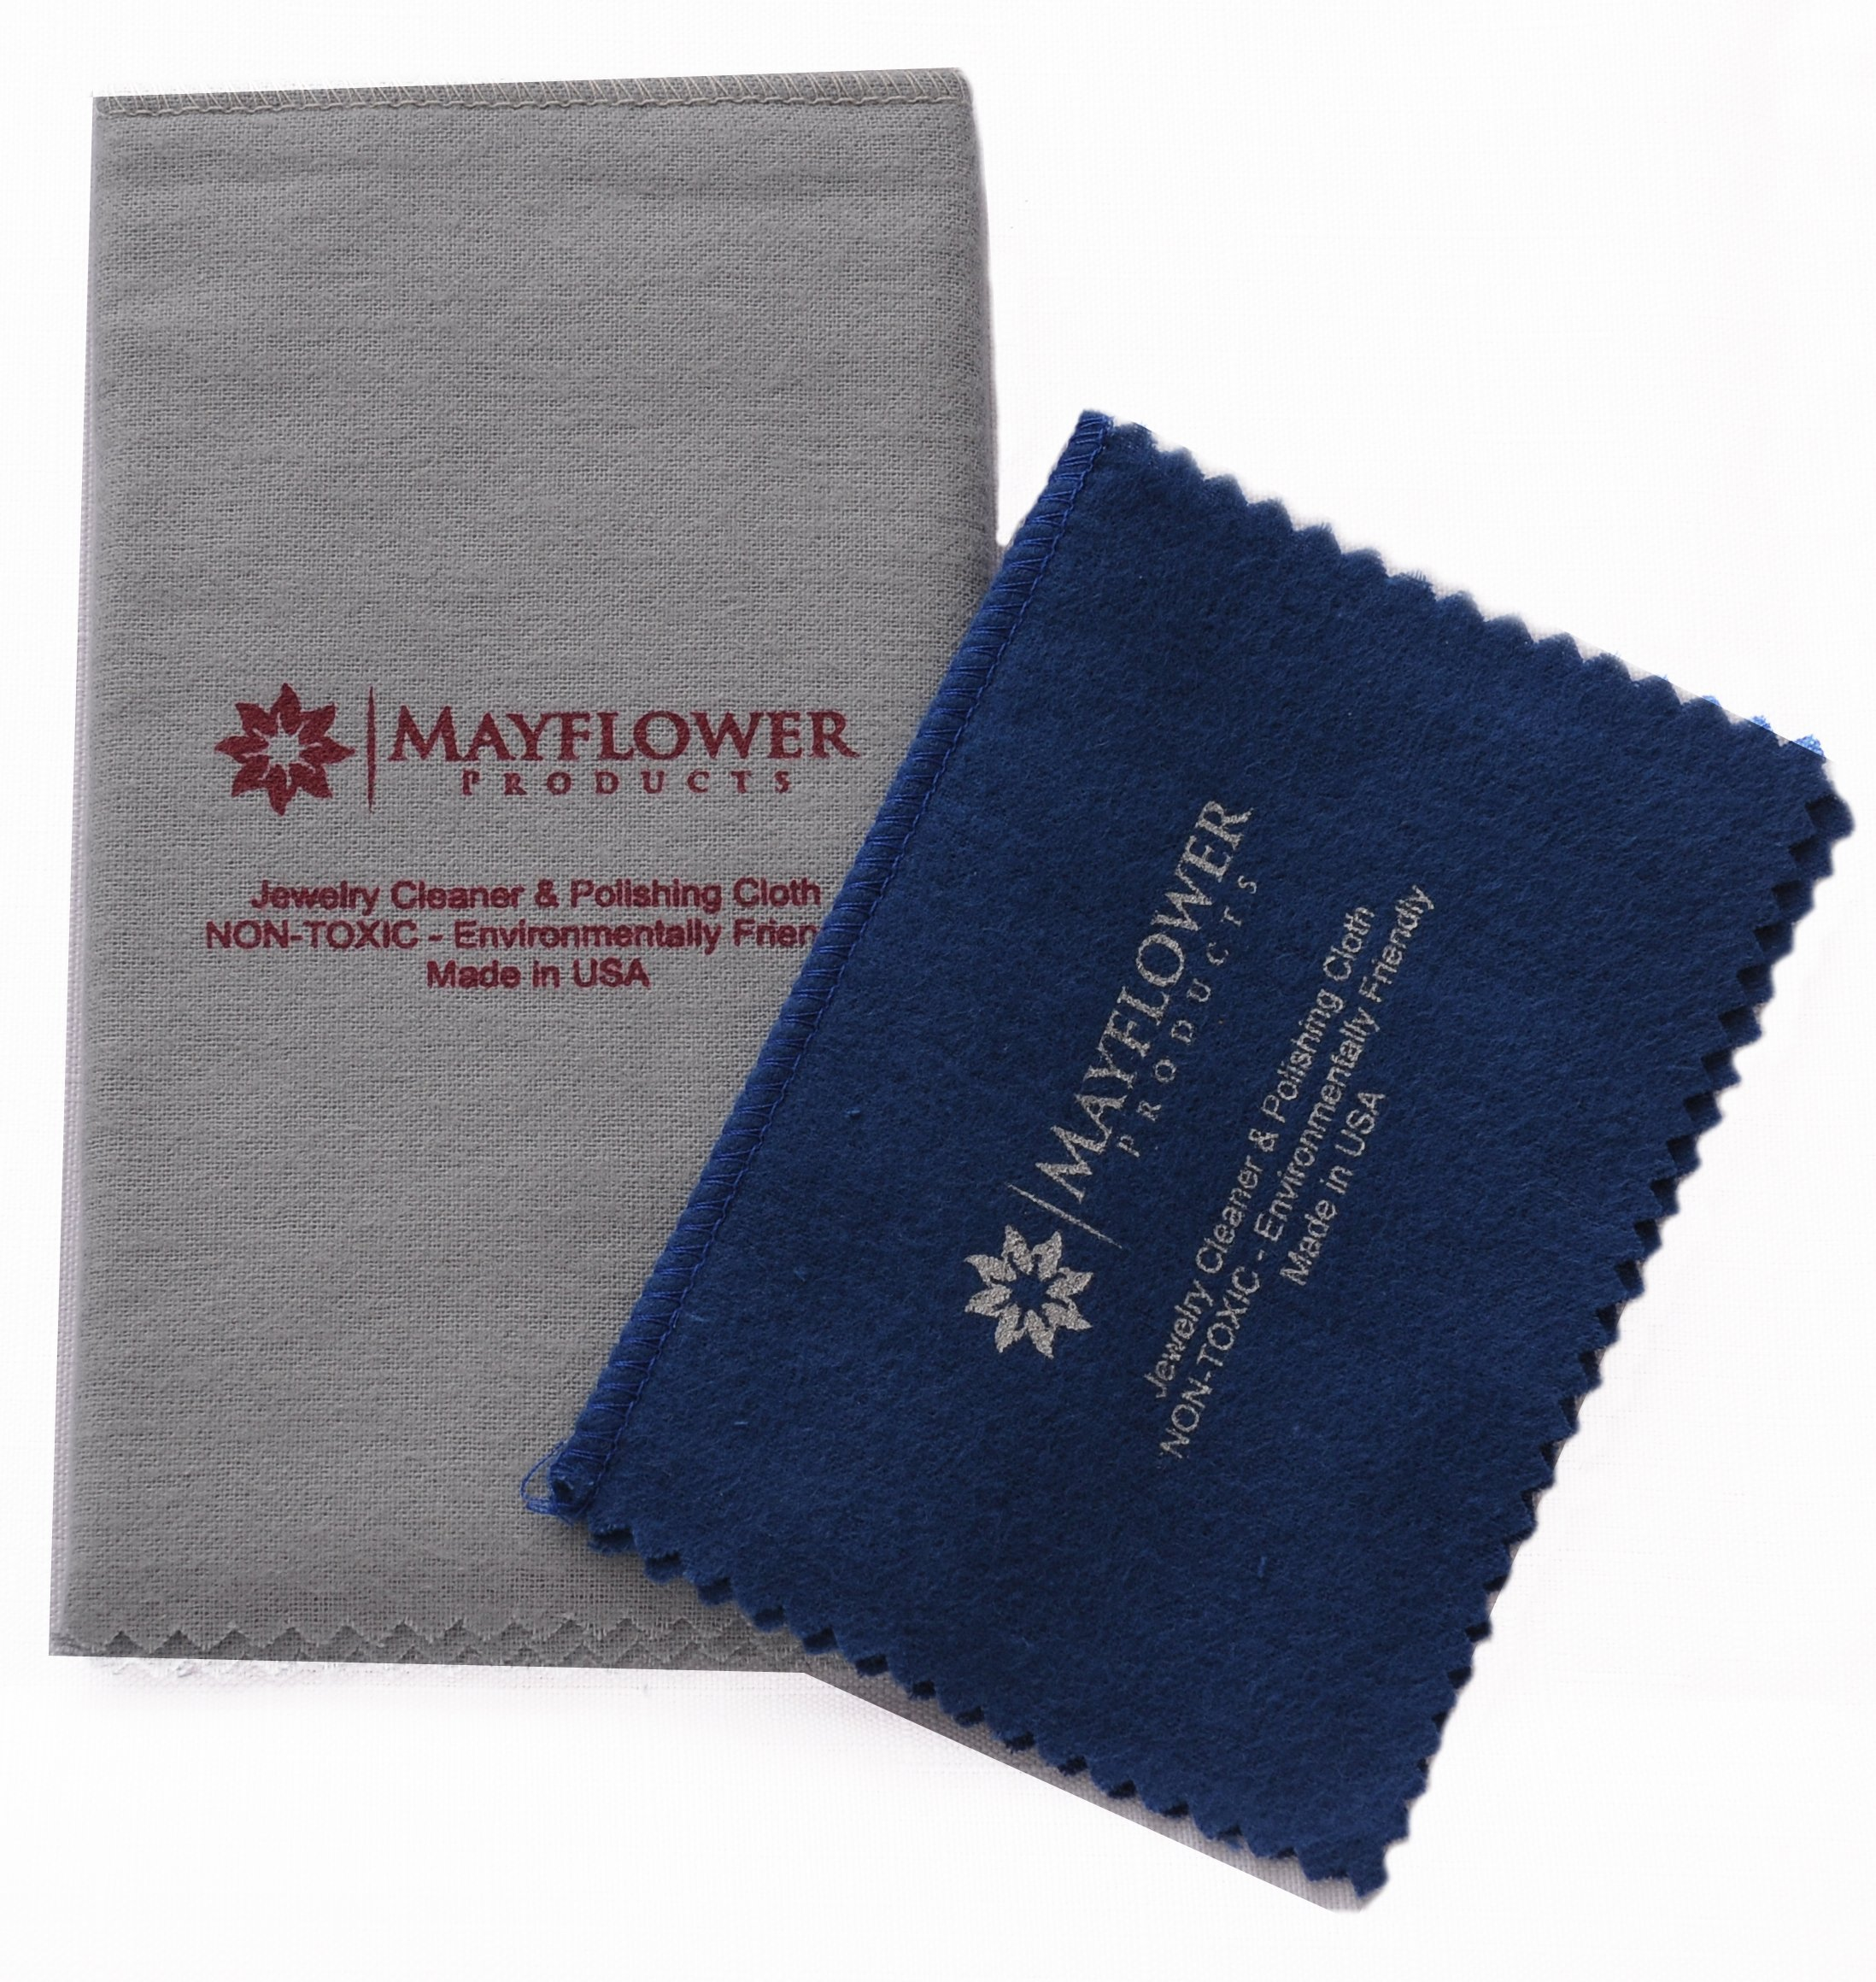 Polishing Cloth 2 Sizes Set: Large 11 x 14, Medium 8 x 6 Inch Pure Cotton Made in USA for Cleaning Silver, Gold, Platinum Jewelry, Watch, Silverware. Non Toxic Tarnish Remover Keeps Jewelry Shining by Mayflower Products